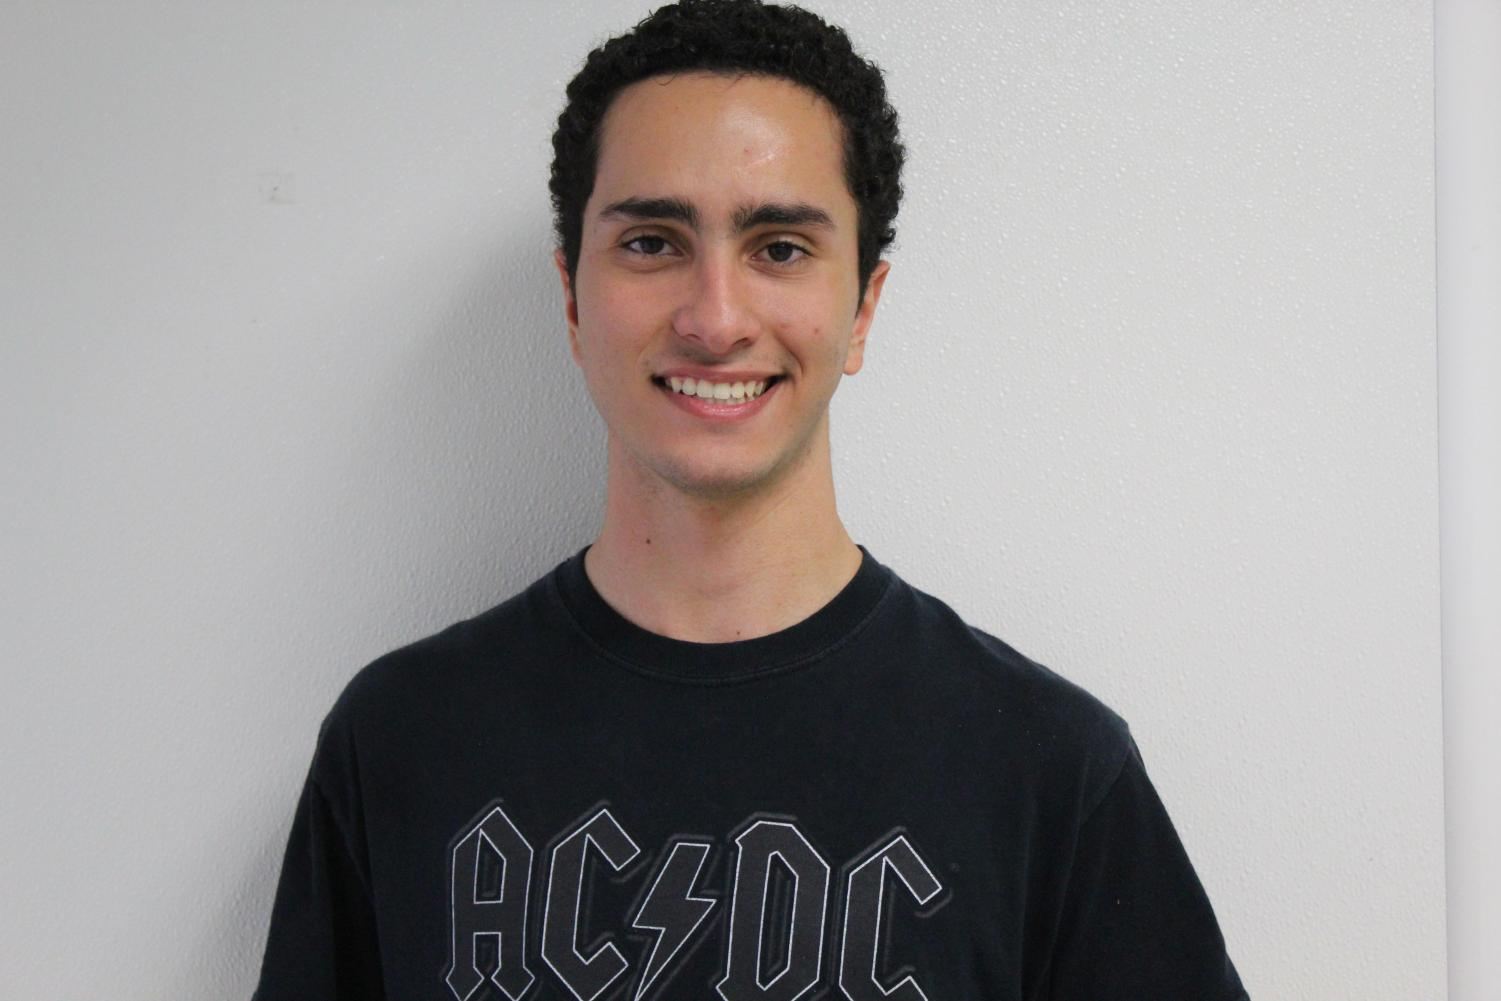 Rho Kappa member makes a difference. Lucas Ramos Gimenez has been spreading the word about voting, trying to get his fellow students to get involved in local politics.